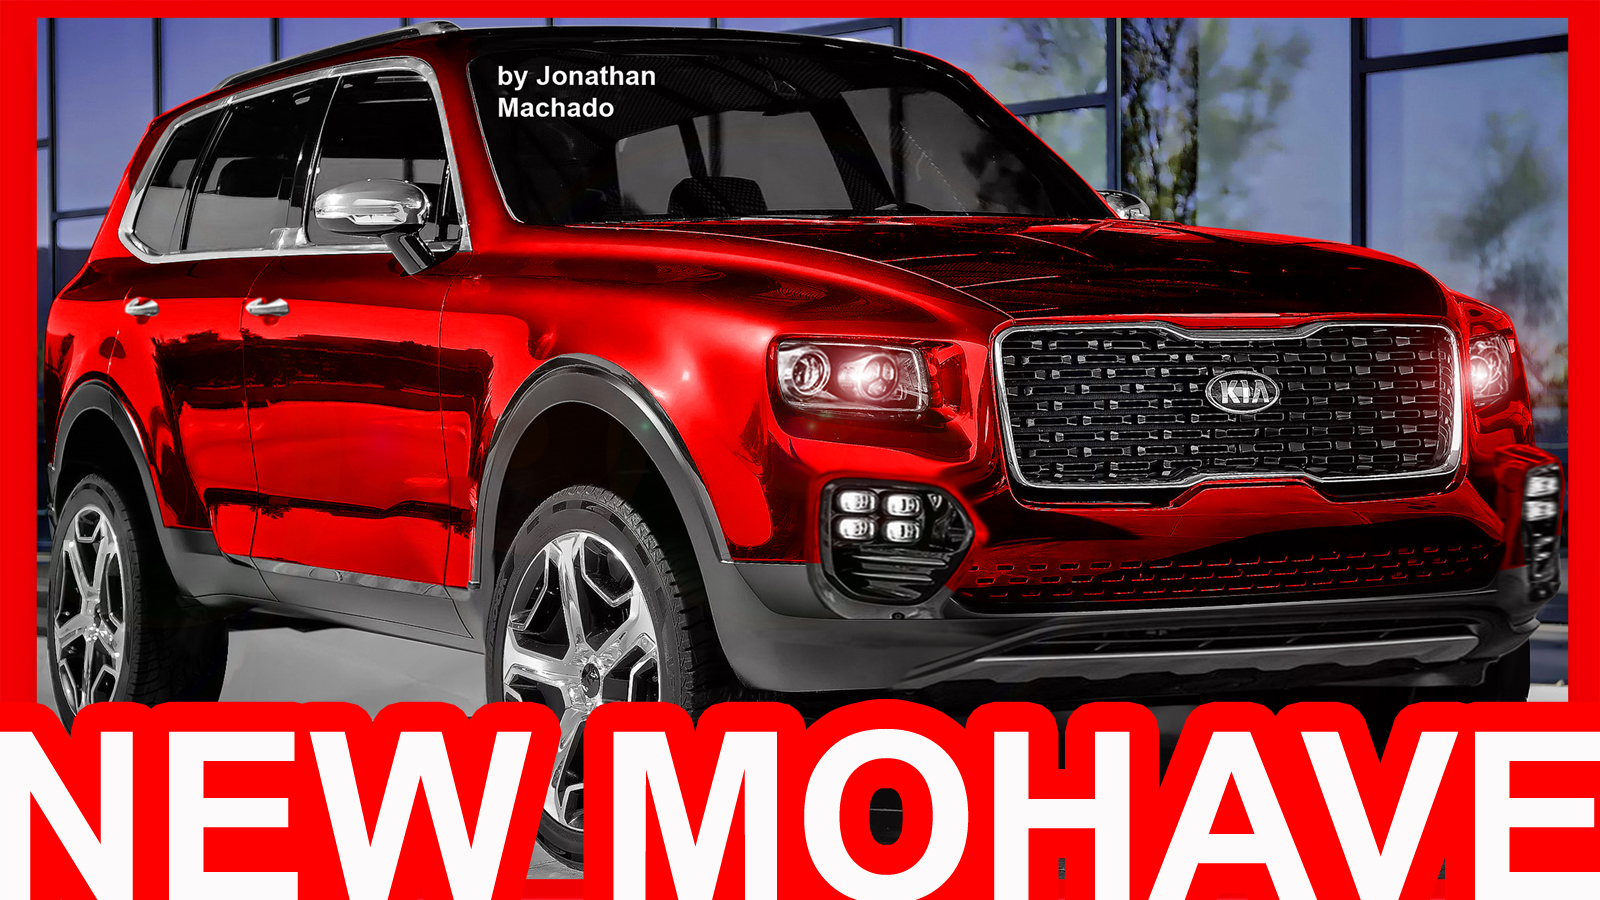 PHOTOSHOP New 2018 Kia Mohave @ Telluride Concept #MOHAVE | CARWP